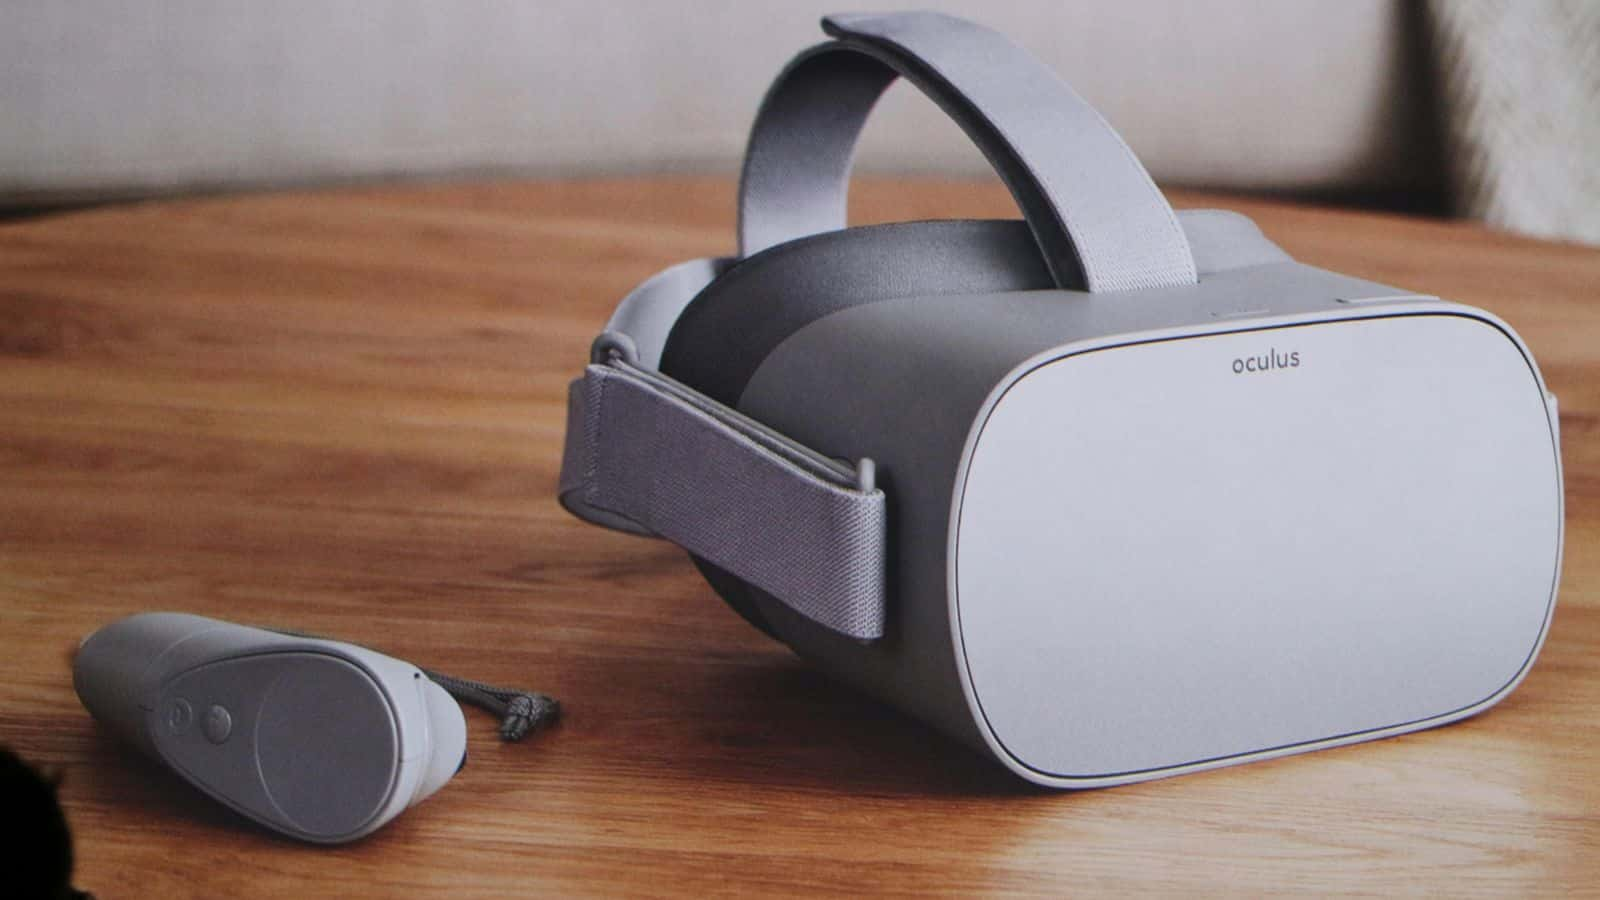 Oculus Go standalone VR headset